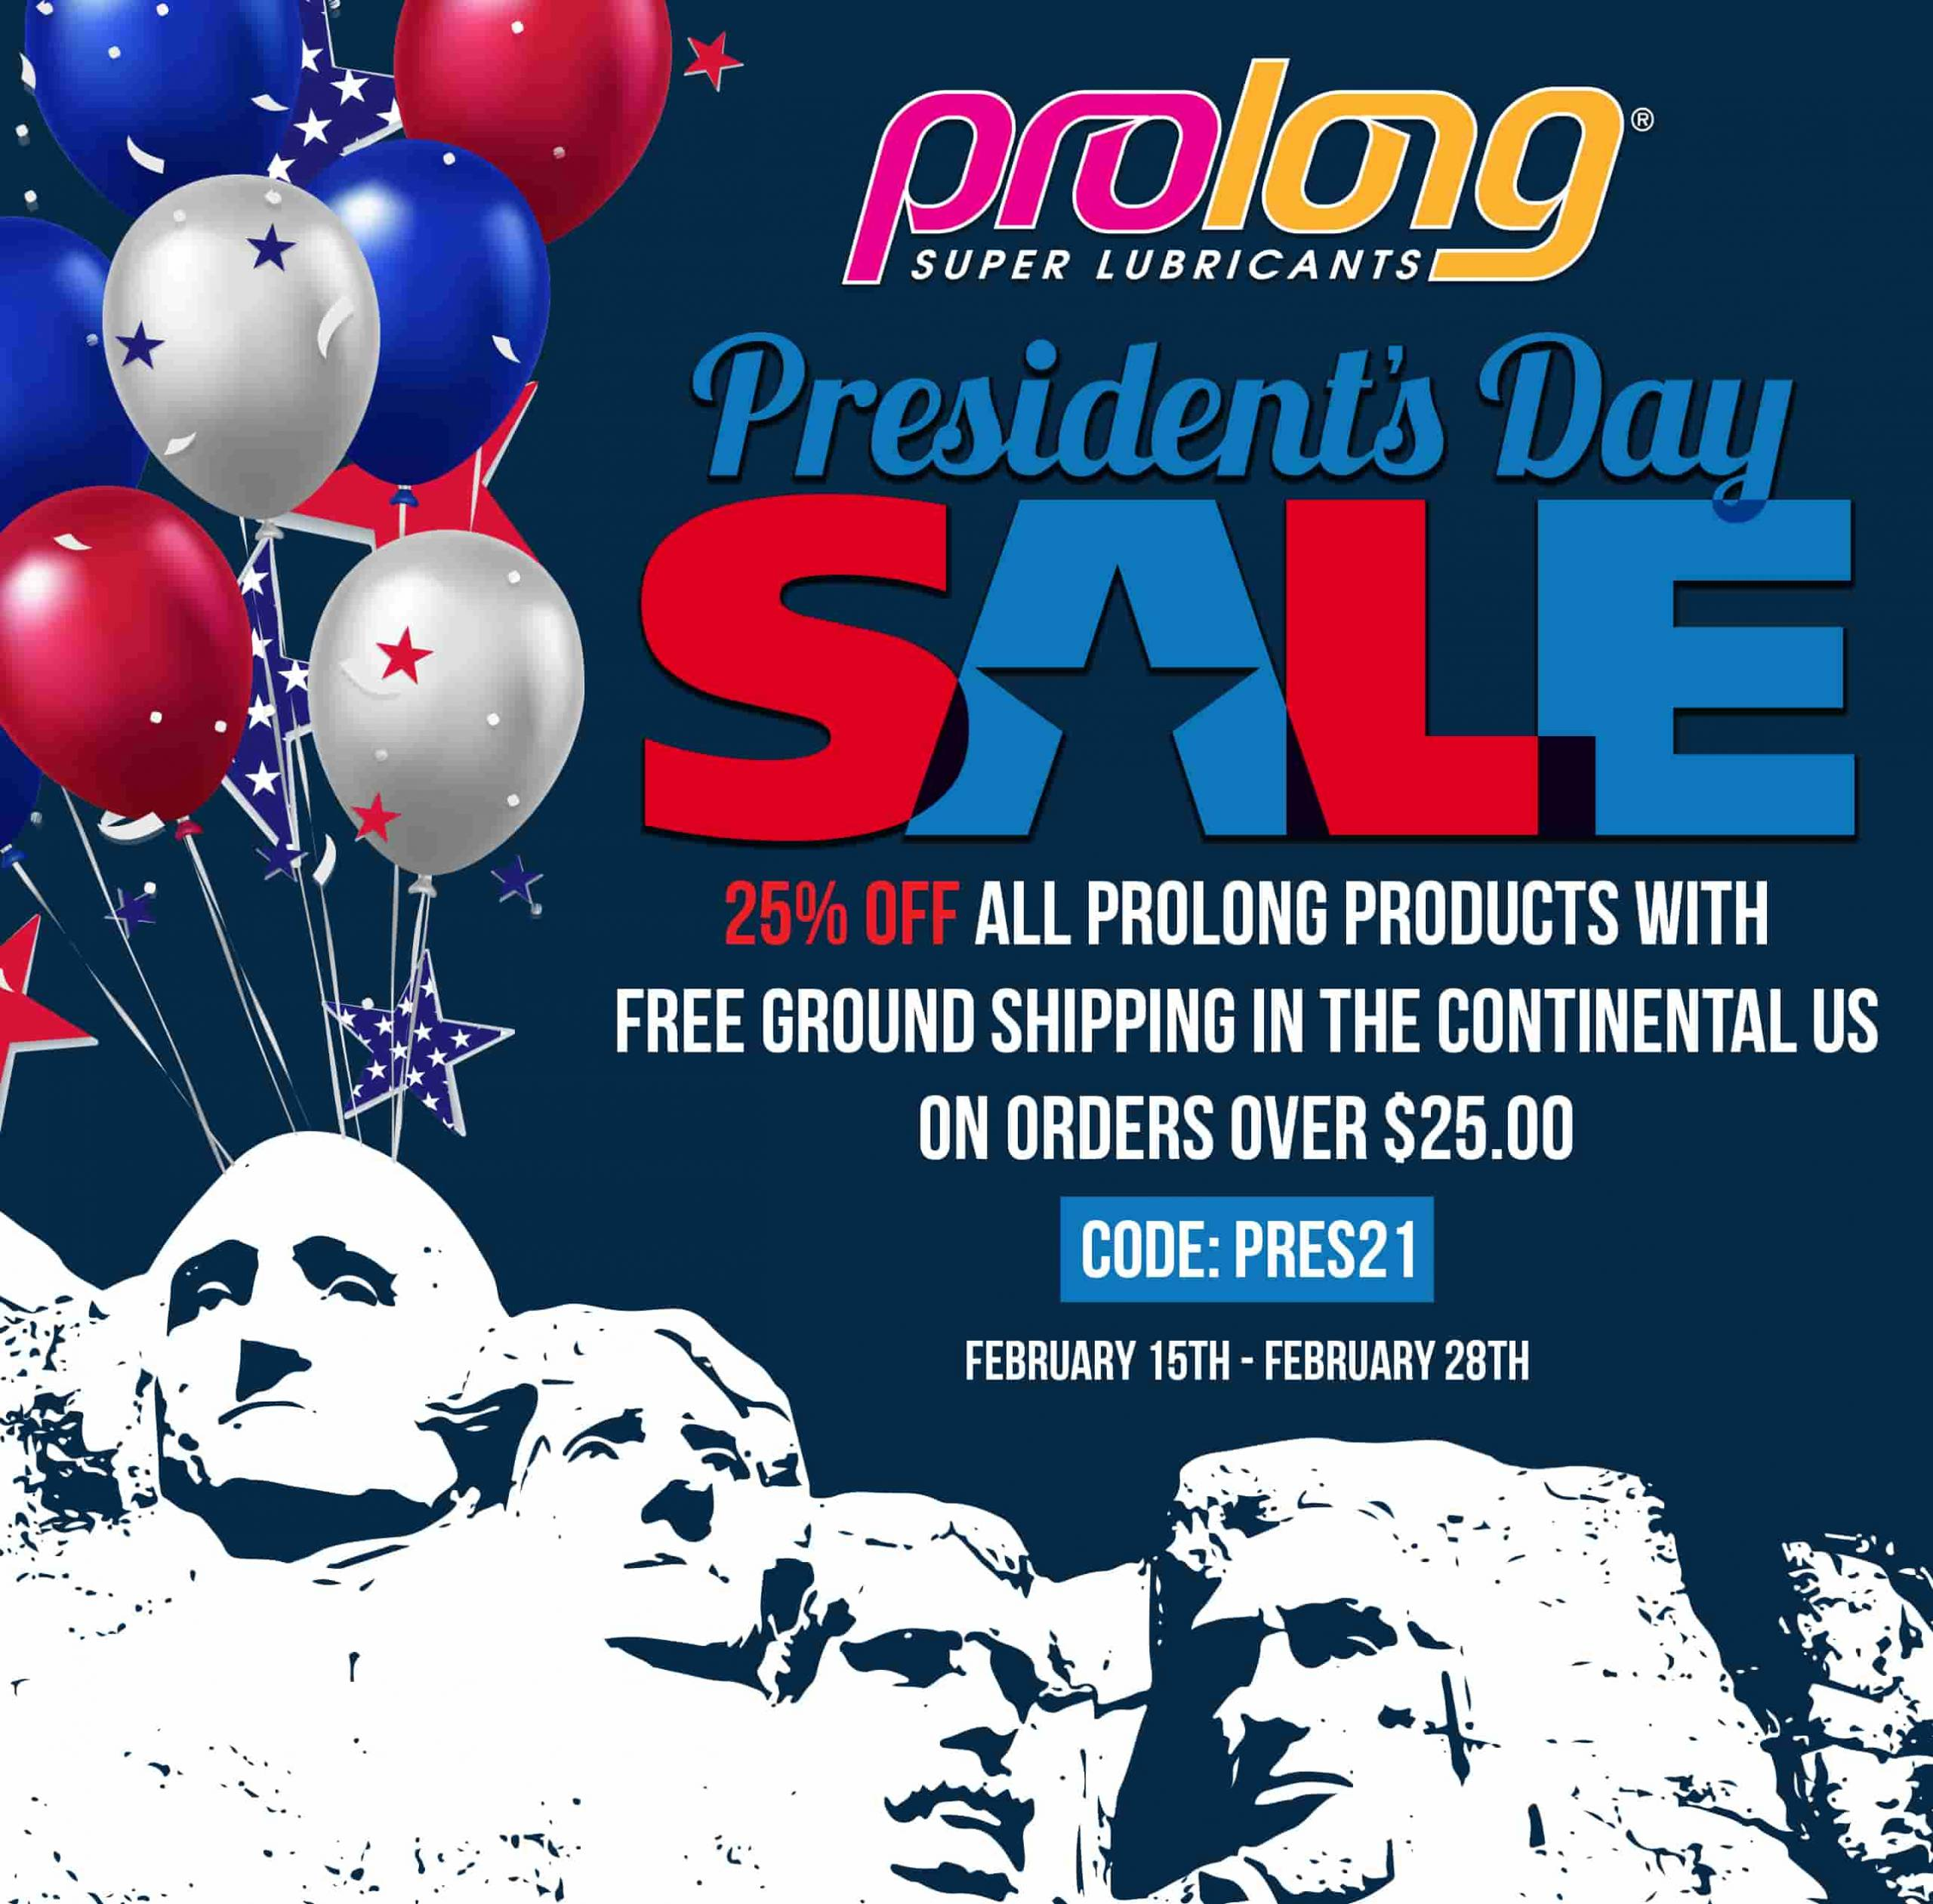 Celebrate President's Day with Prolong